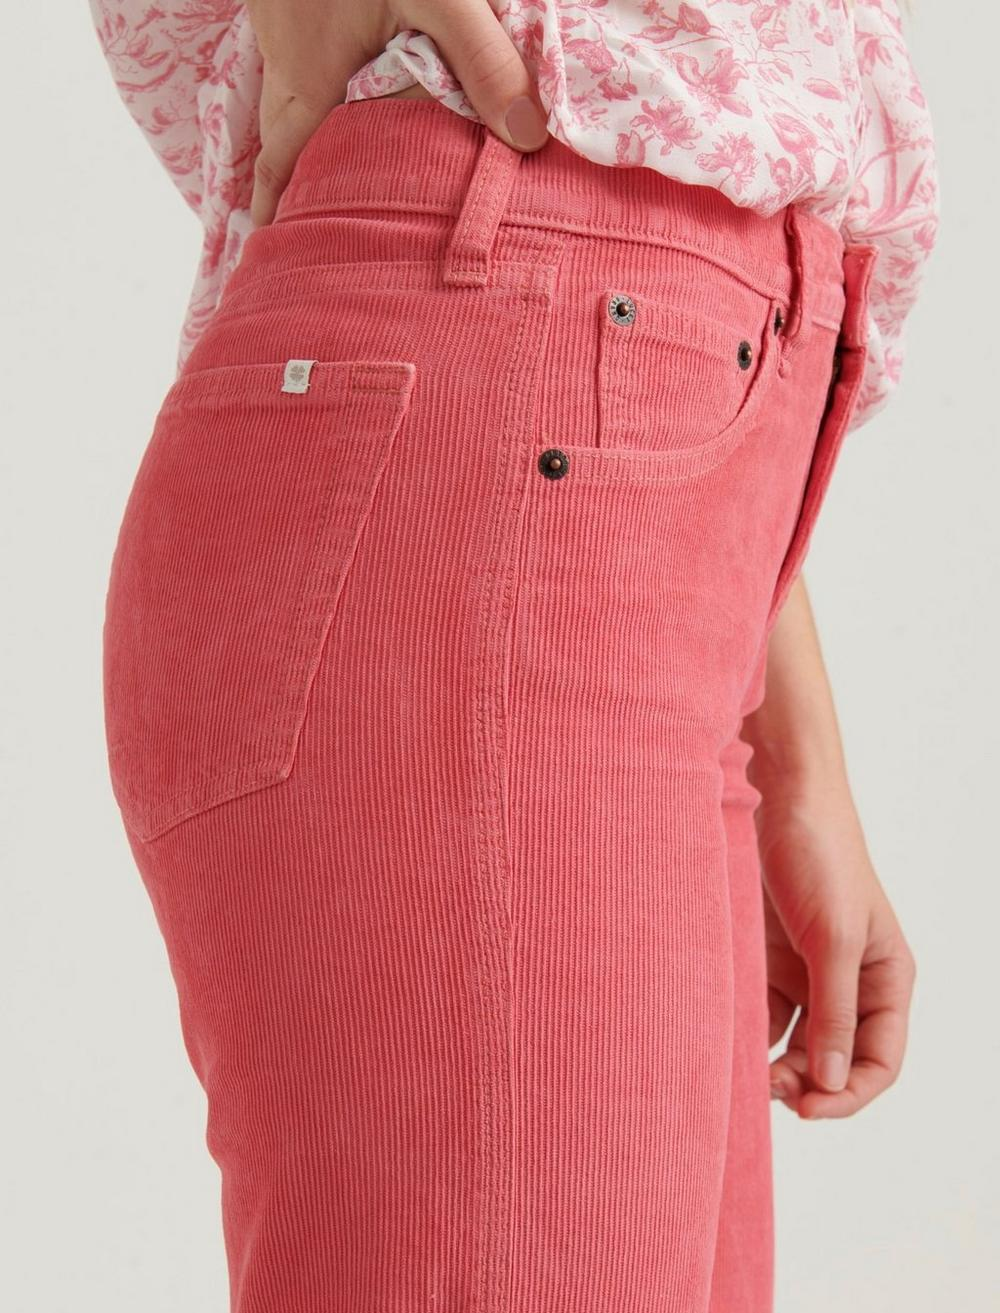 MID RISE AUTHENTIC STRAIGHT CROP CORDUROY JEAN, image 6